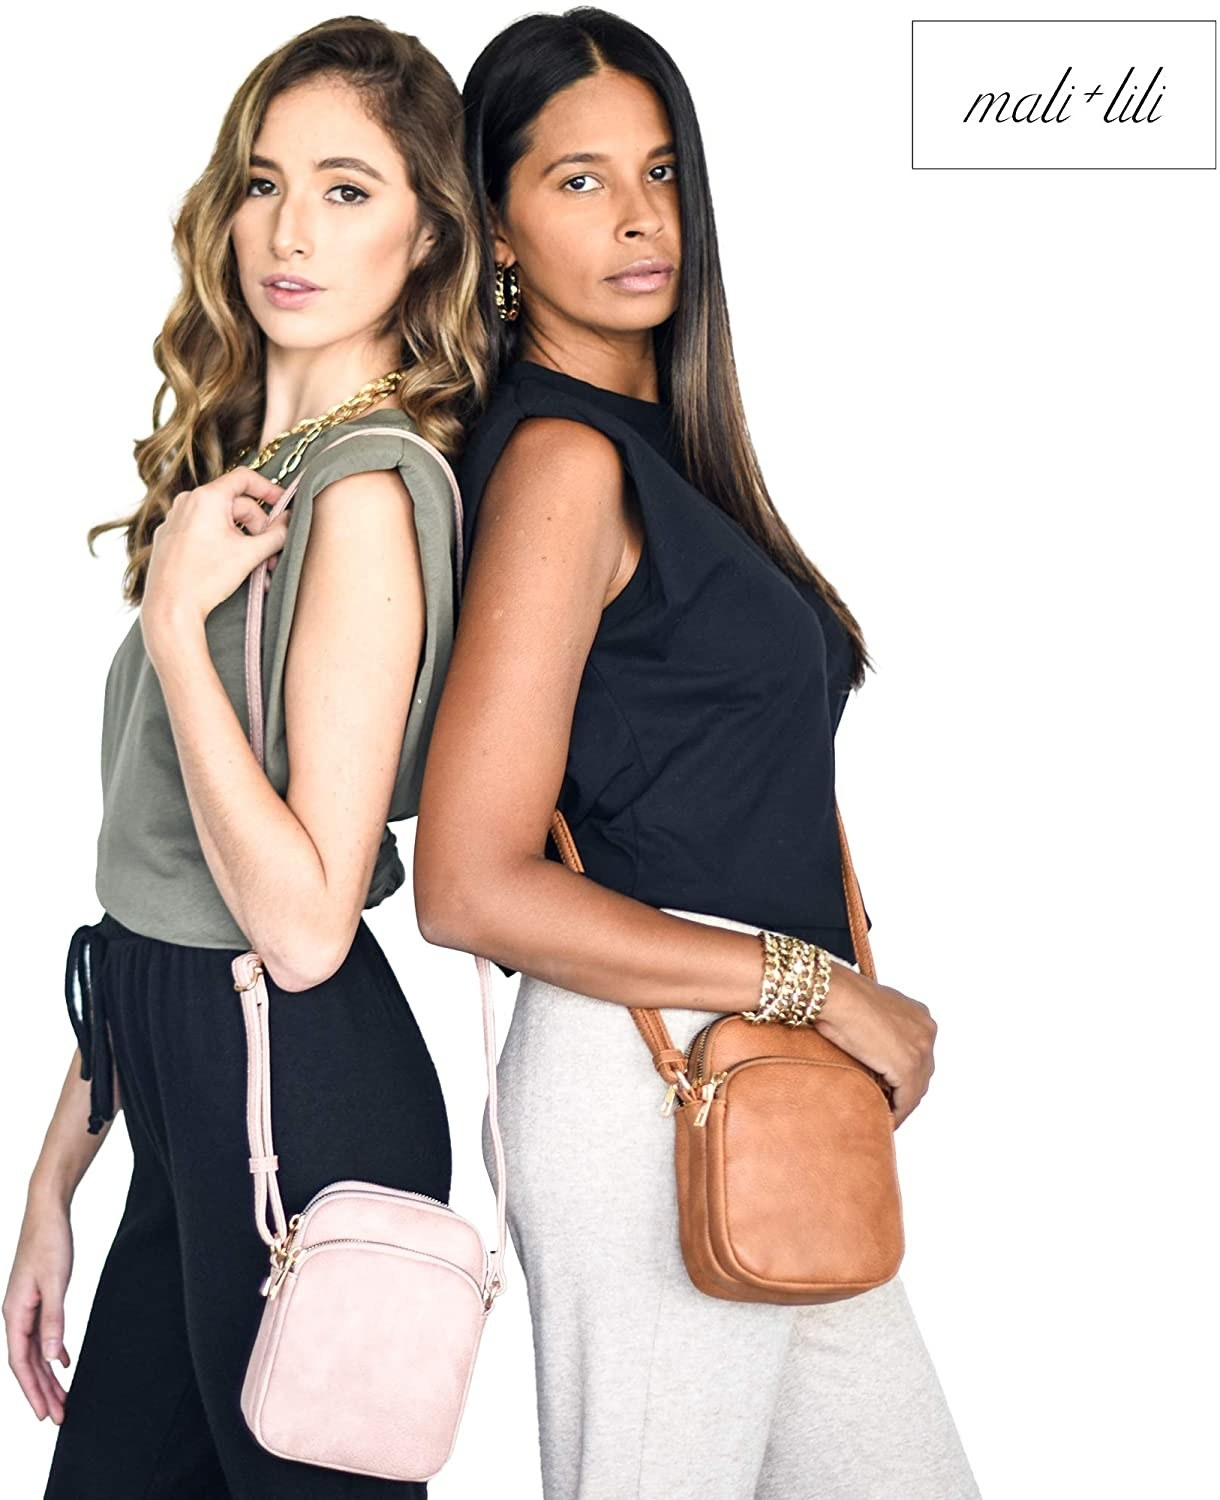 Two models, one carrying the pink bag and one carrying the camel